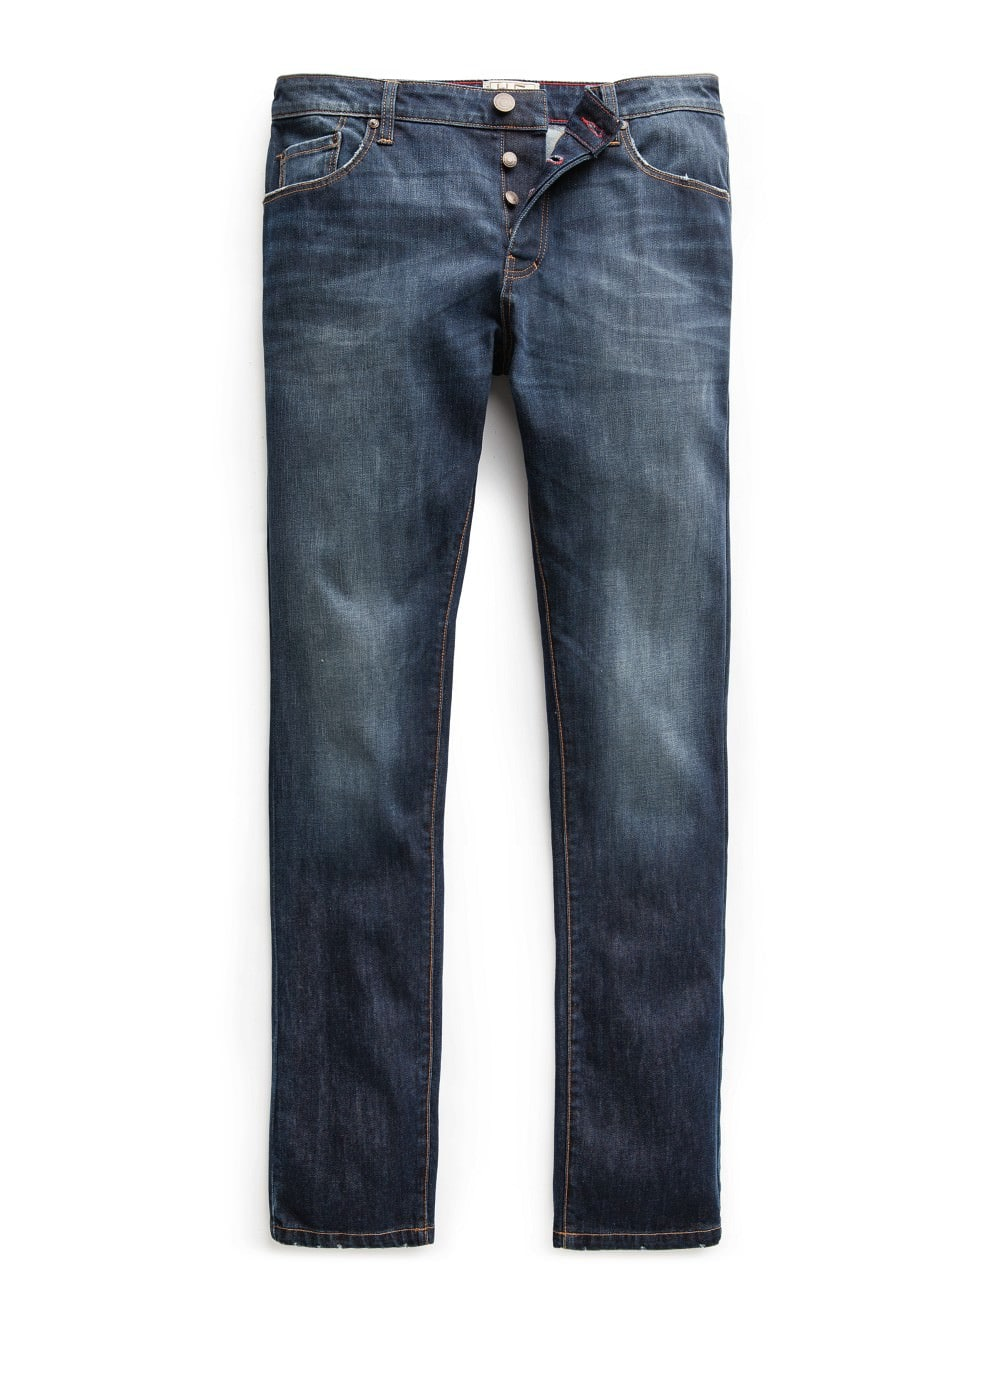 Jeans tim slim-fit lavado oscuro | MANGO KIDS